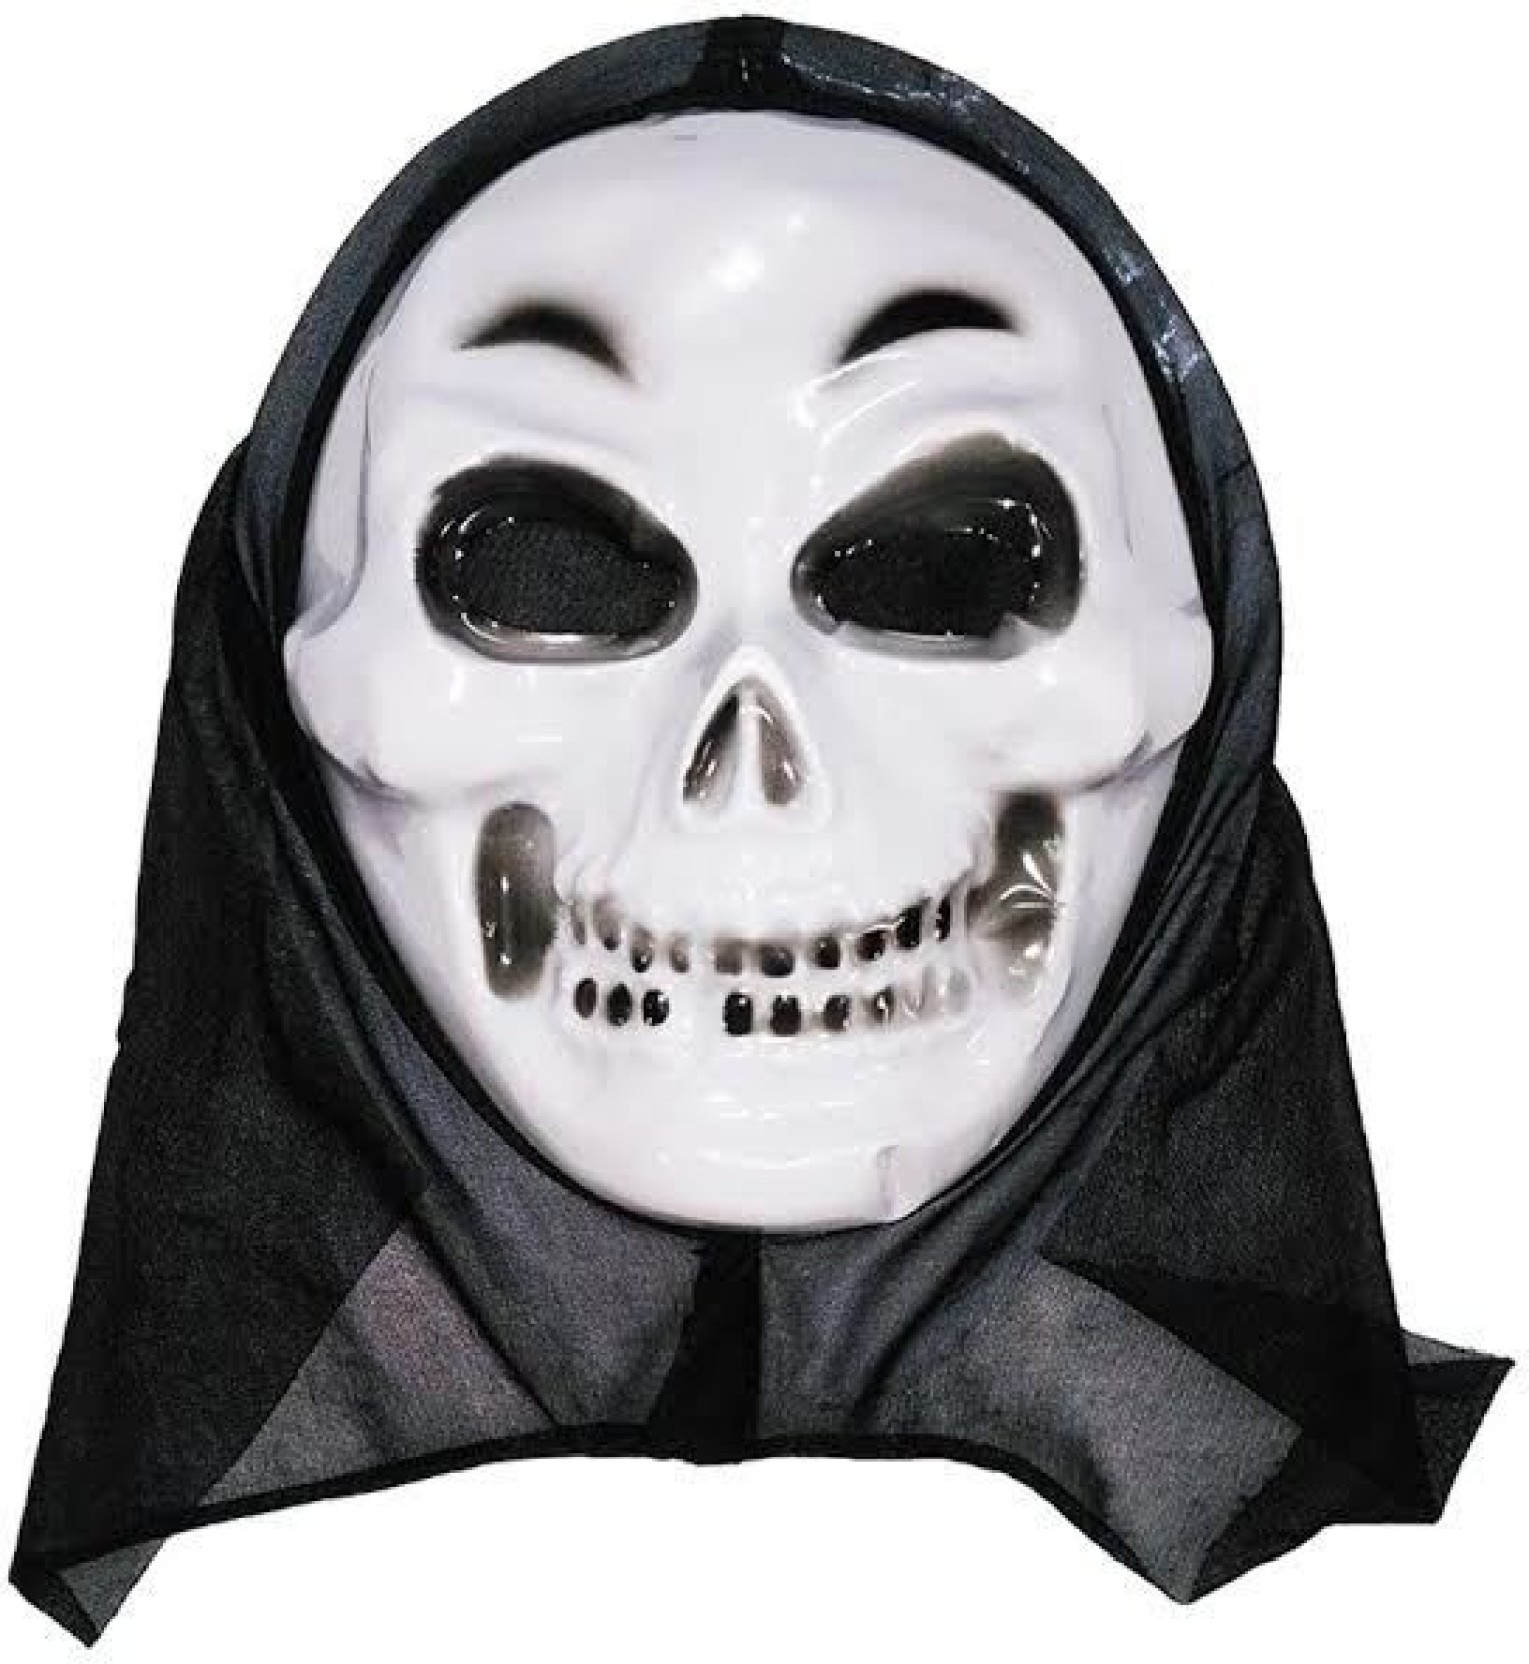 oxytrends halloween scary mask pack of 5 pieces - white party mask